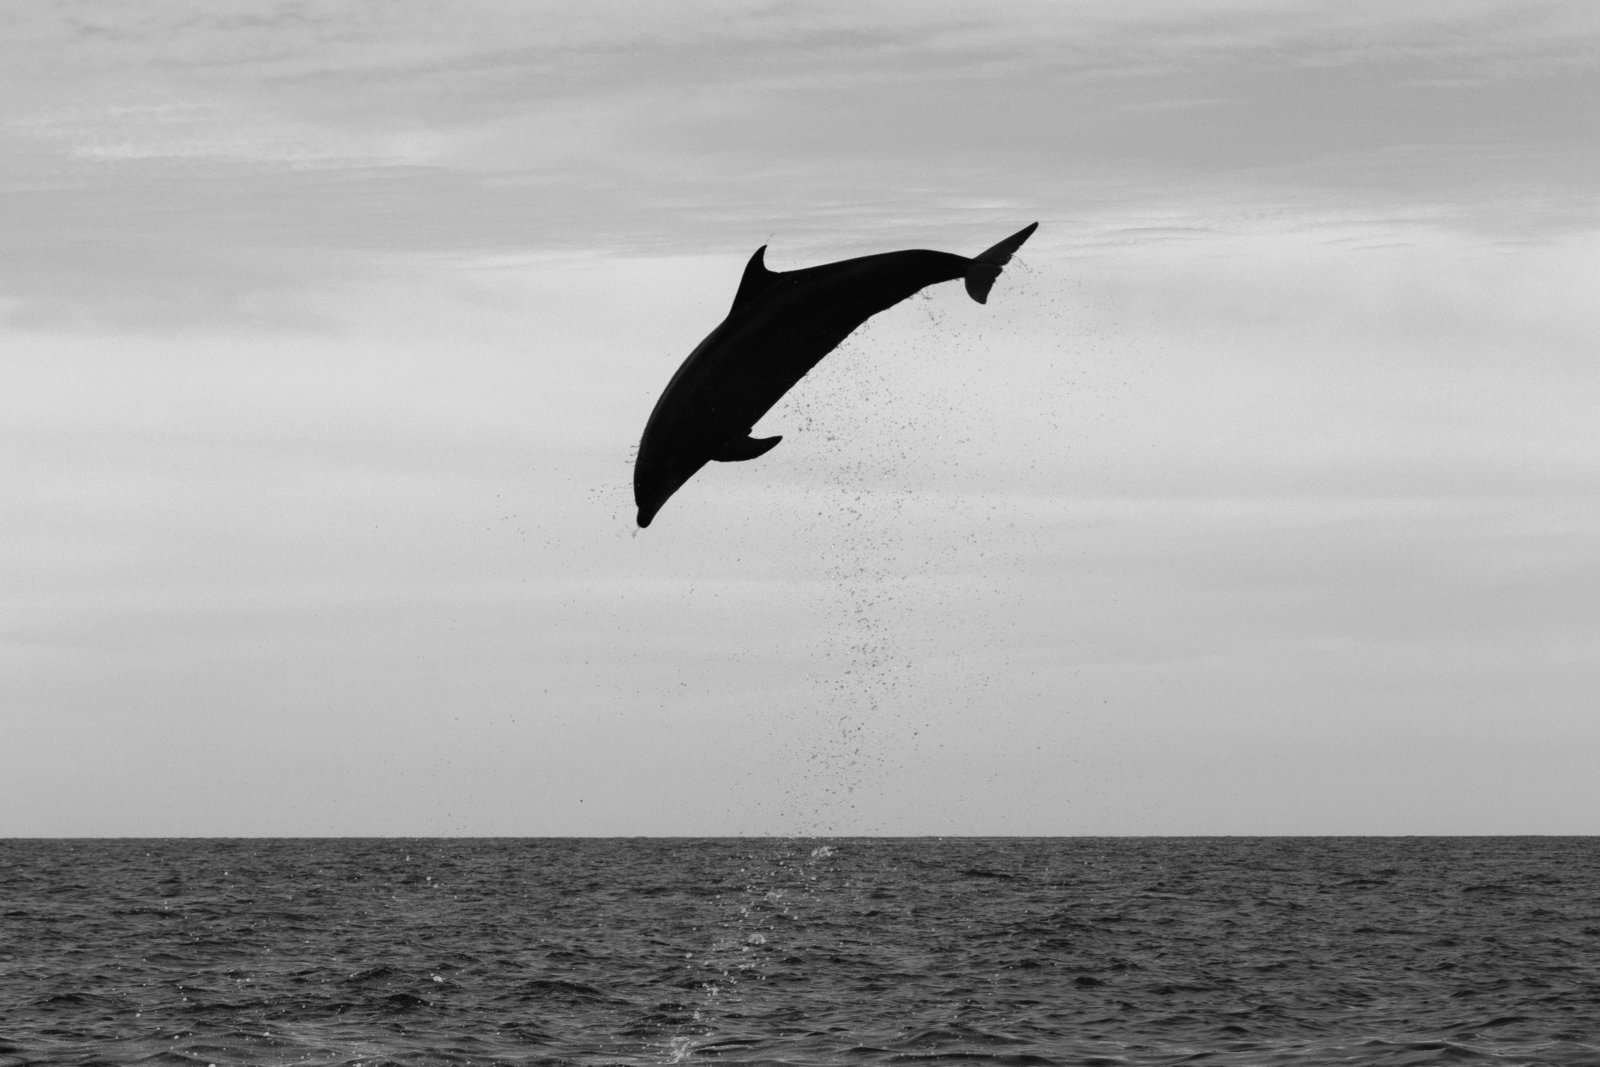 cameron-zegers-travel-photographer-baja-mexico-dolphin-jump